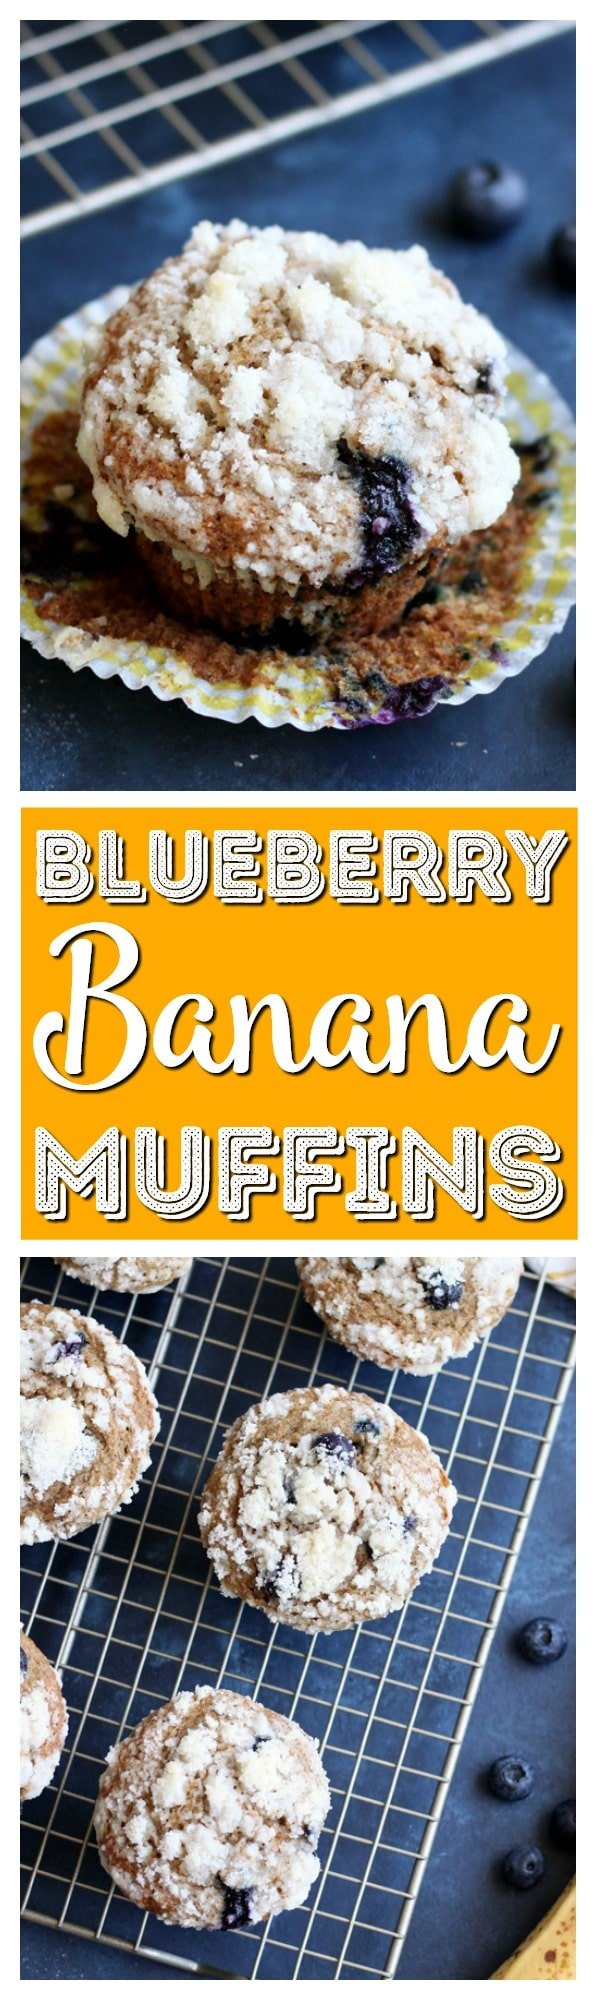 These Banana Blueberry Whole Wheat Muffins are packed with wholesome ingredients. They make a delicious breakfast that tastes like a decadent dessert. via @sugarandsoulco